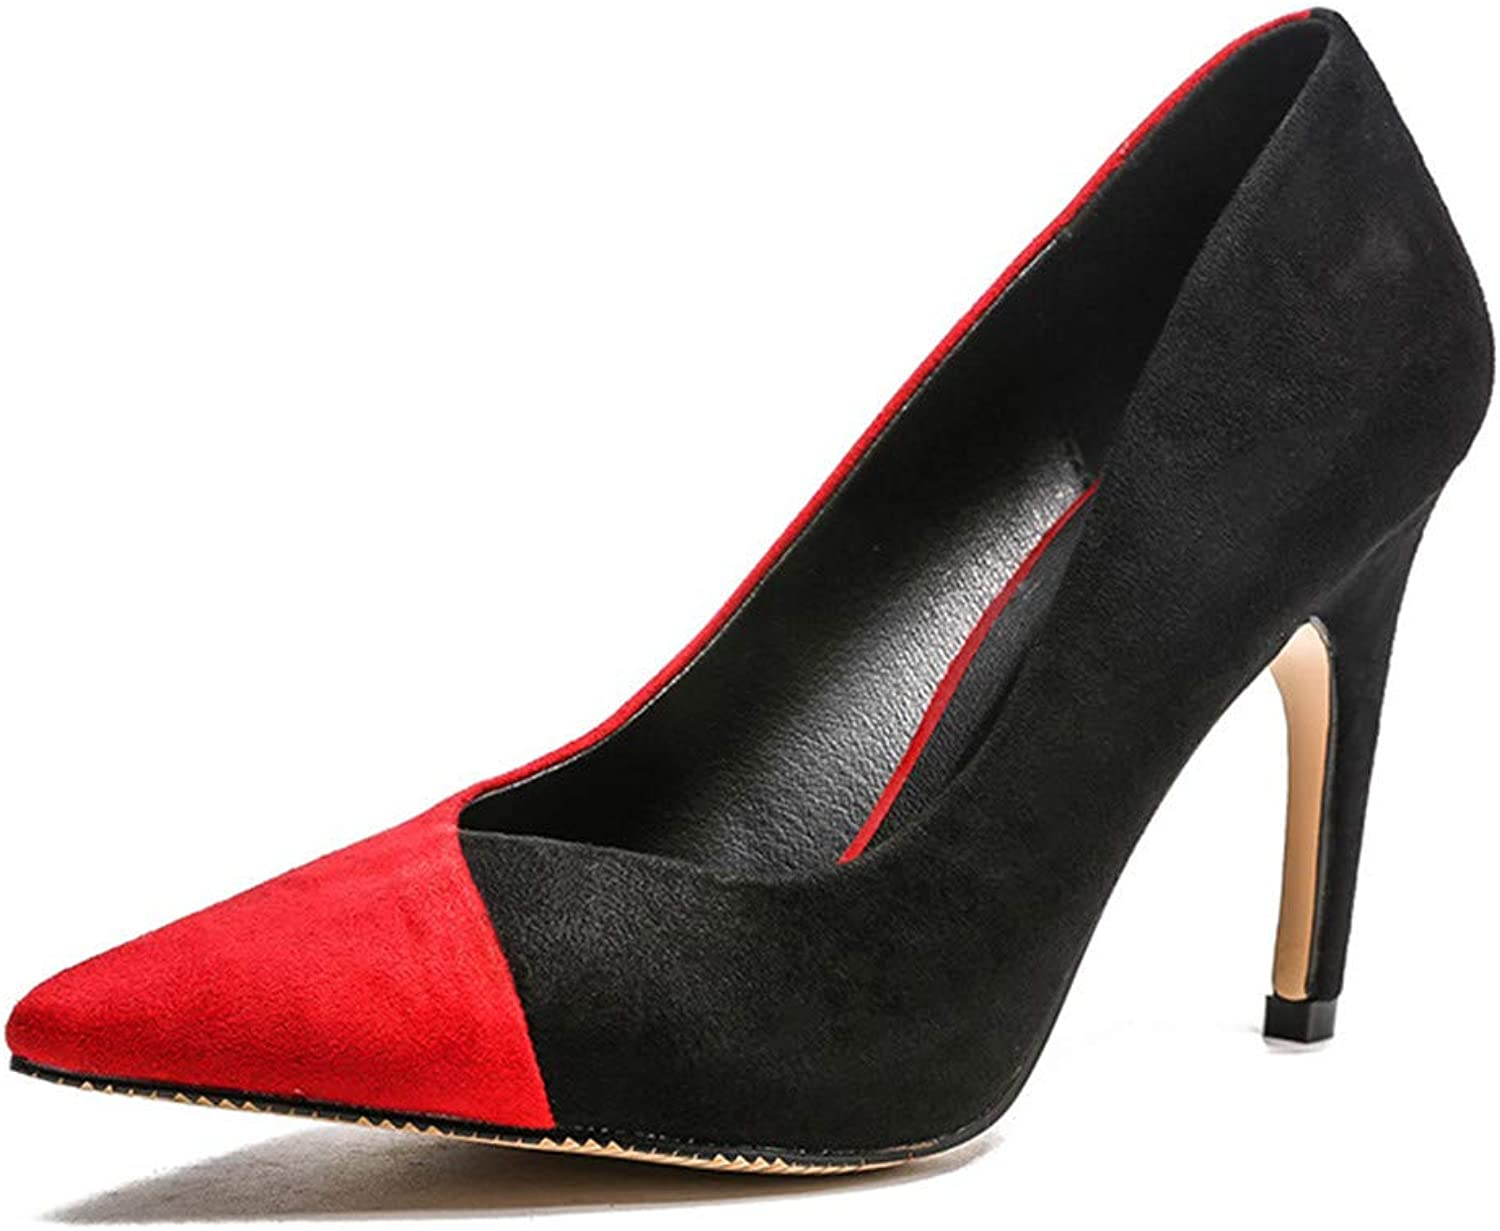 Meiren Pumps High Heel Pointed Stiletto Fashion Shallow Mouth Women's shoes Red